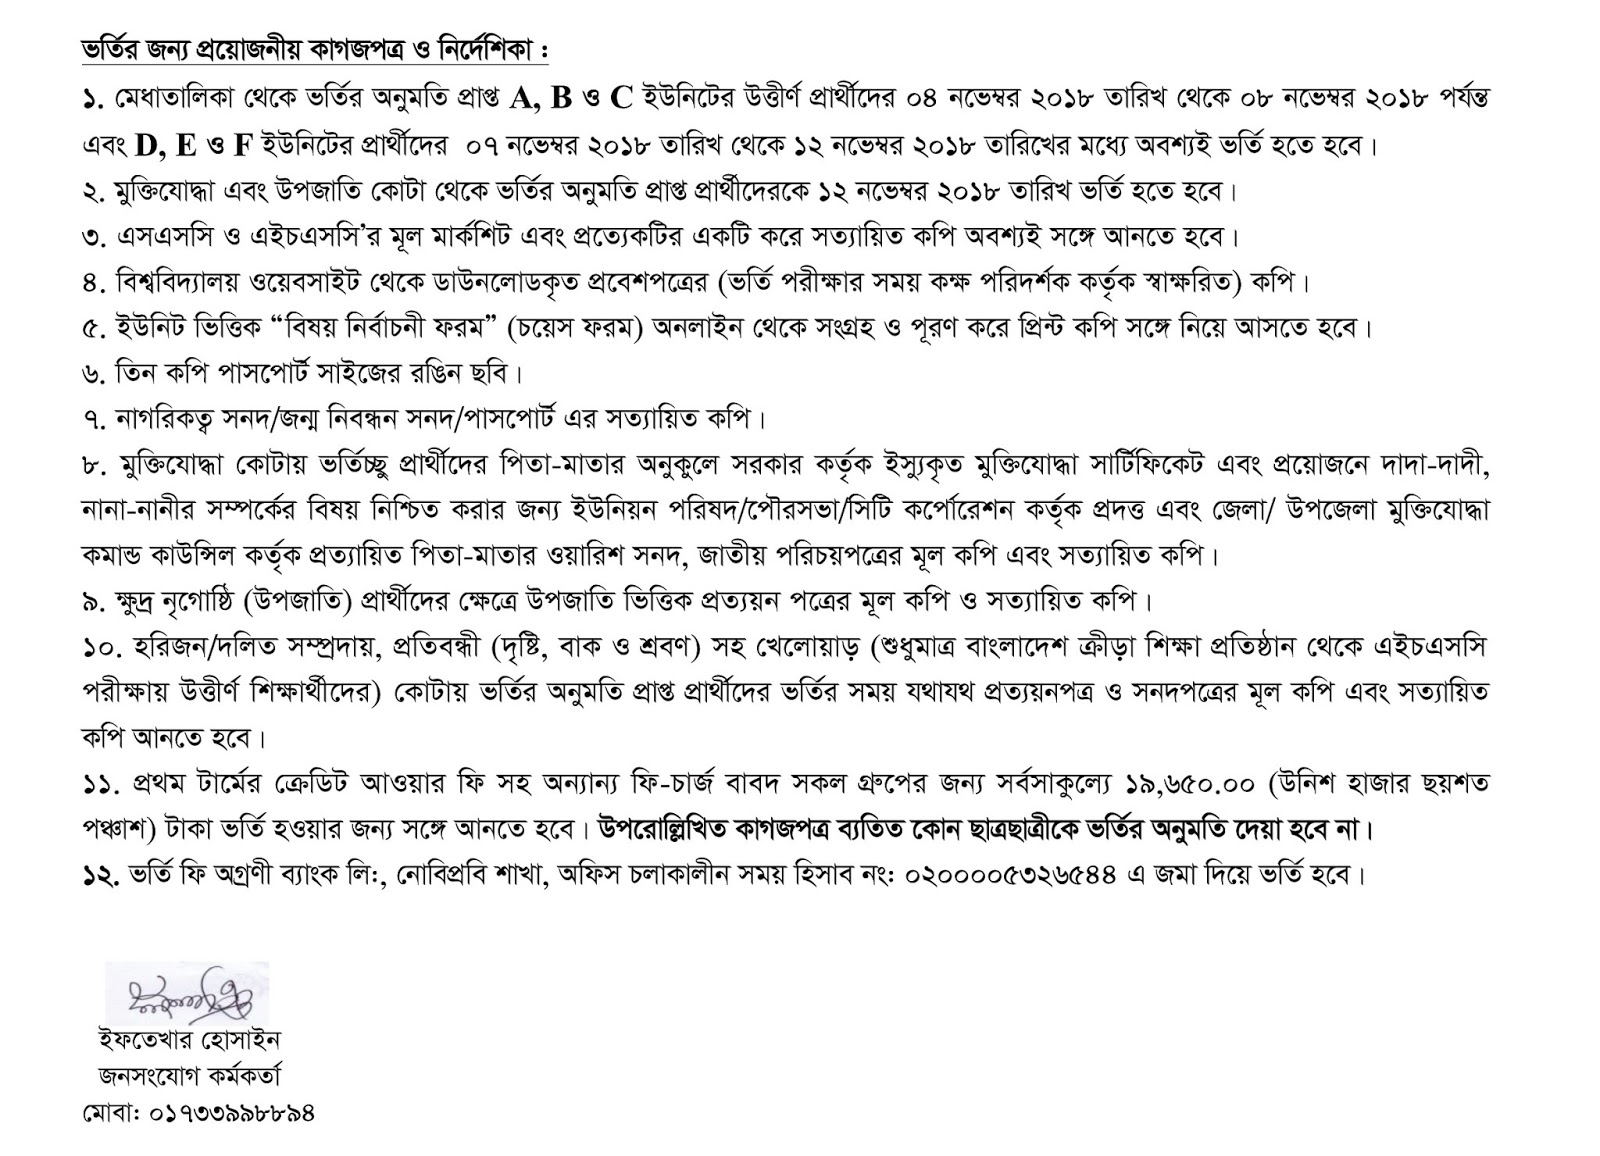 (NSTU) Noakhali Science and Technology University Admission Notice Circular 2018-19